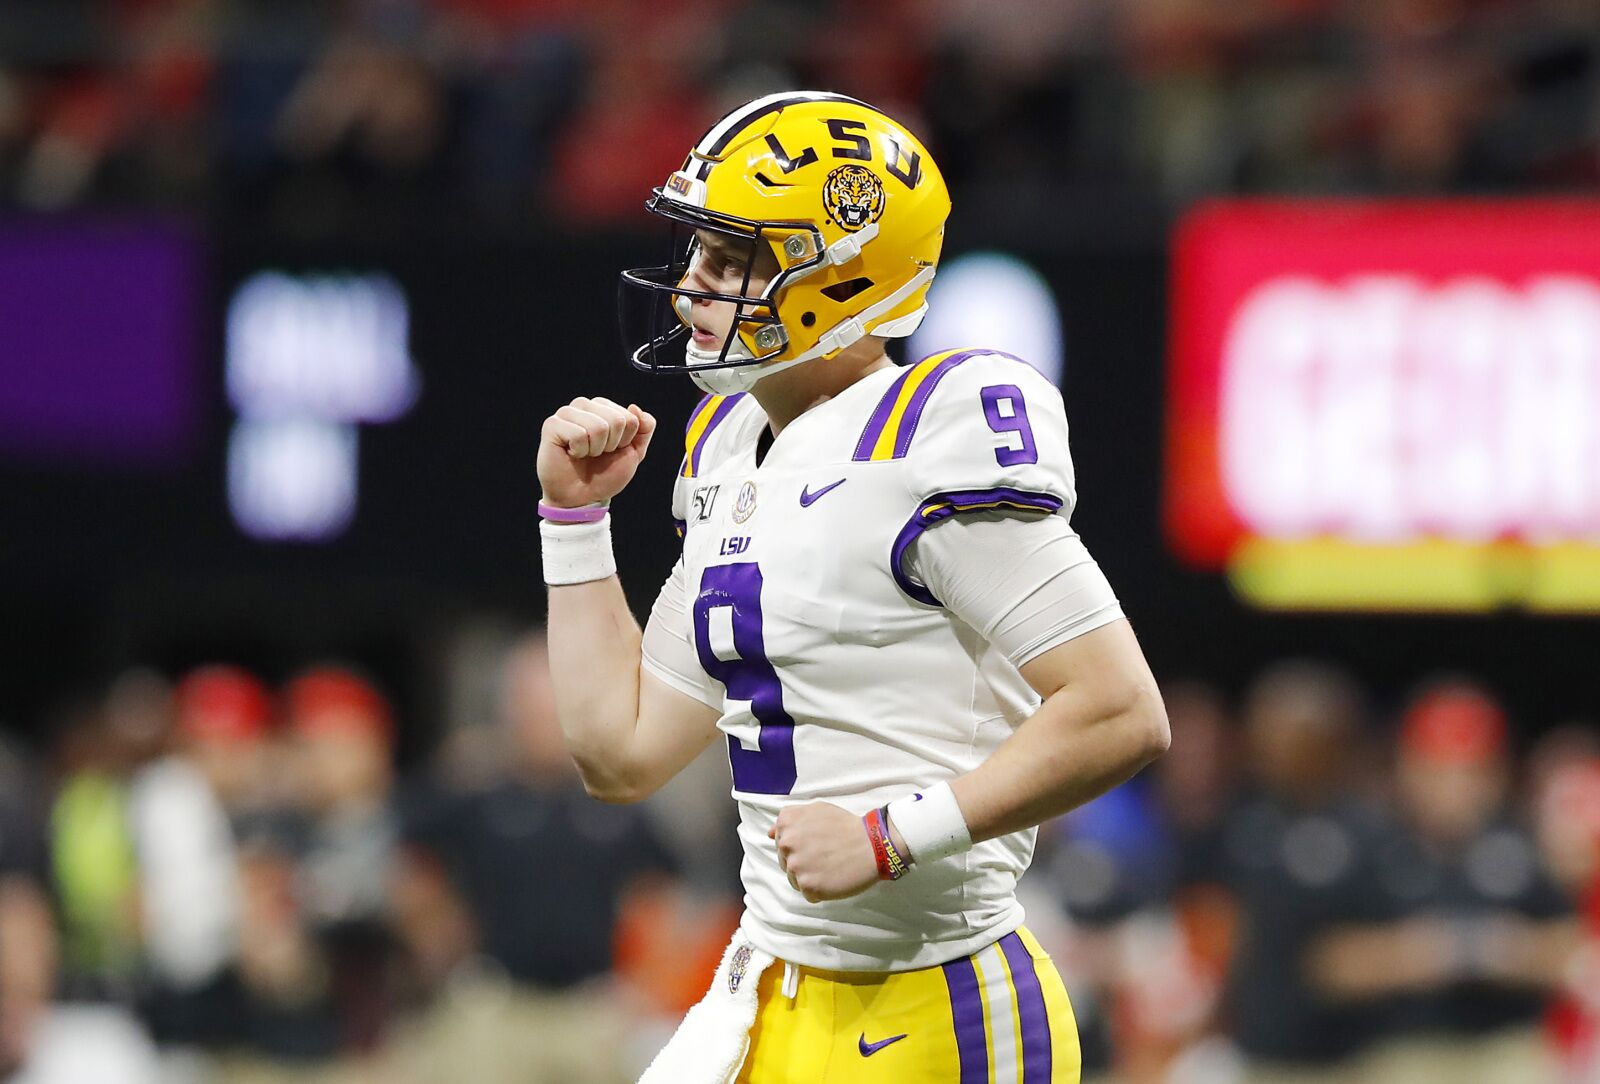 New Orleans Saints: Here's why there's no chance Joe Burrow is a Saint